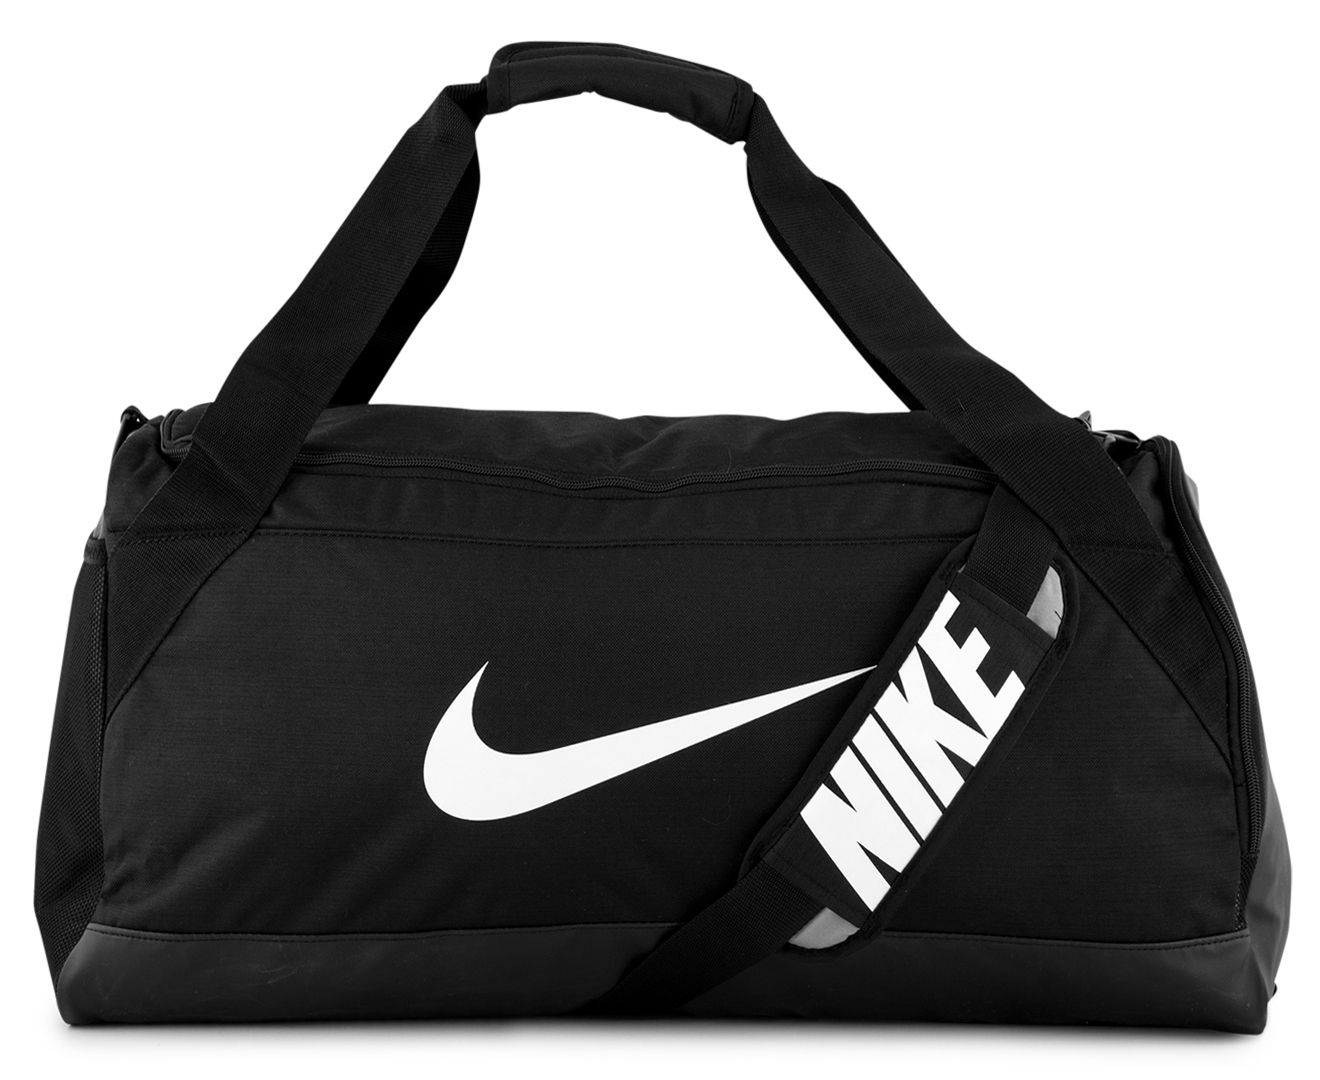 9e421a0cf64 Nike Brasilia Medium Duffle Bag - Black White